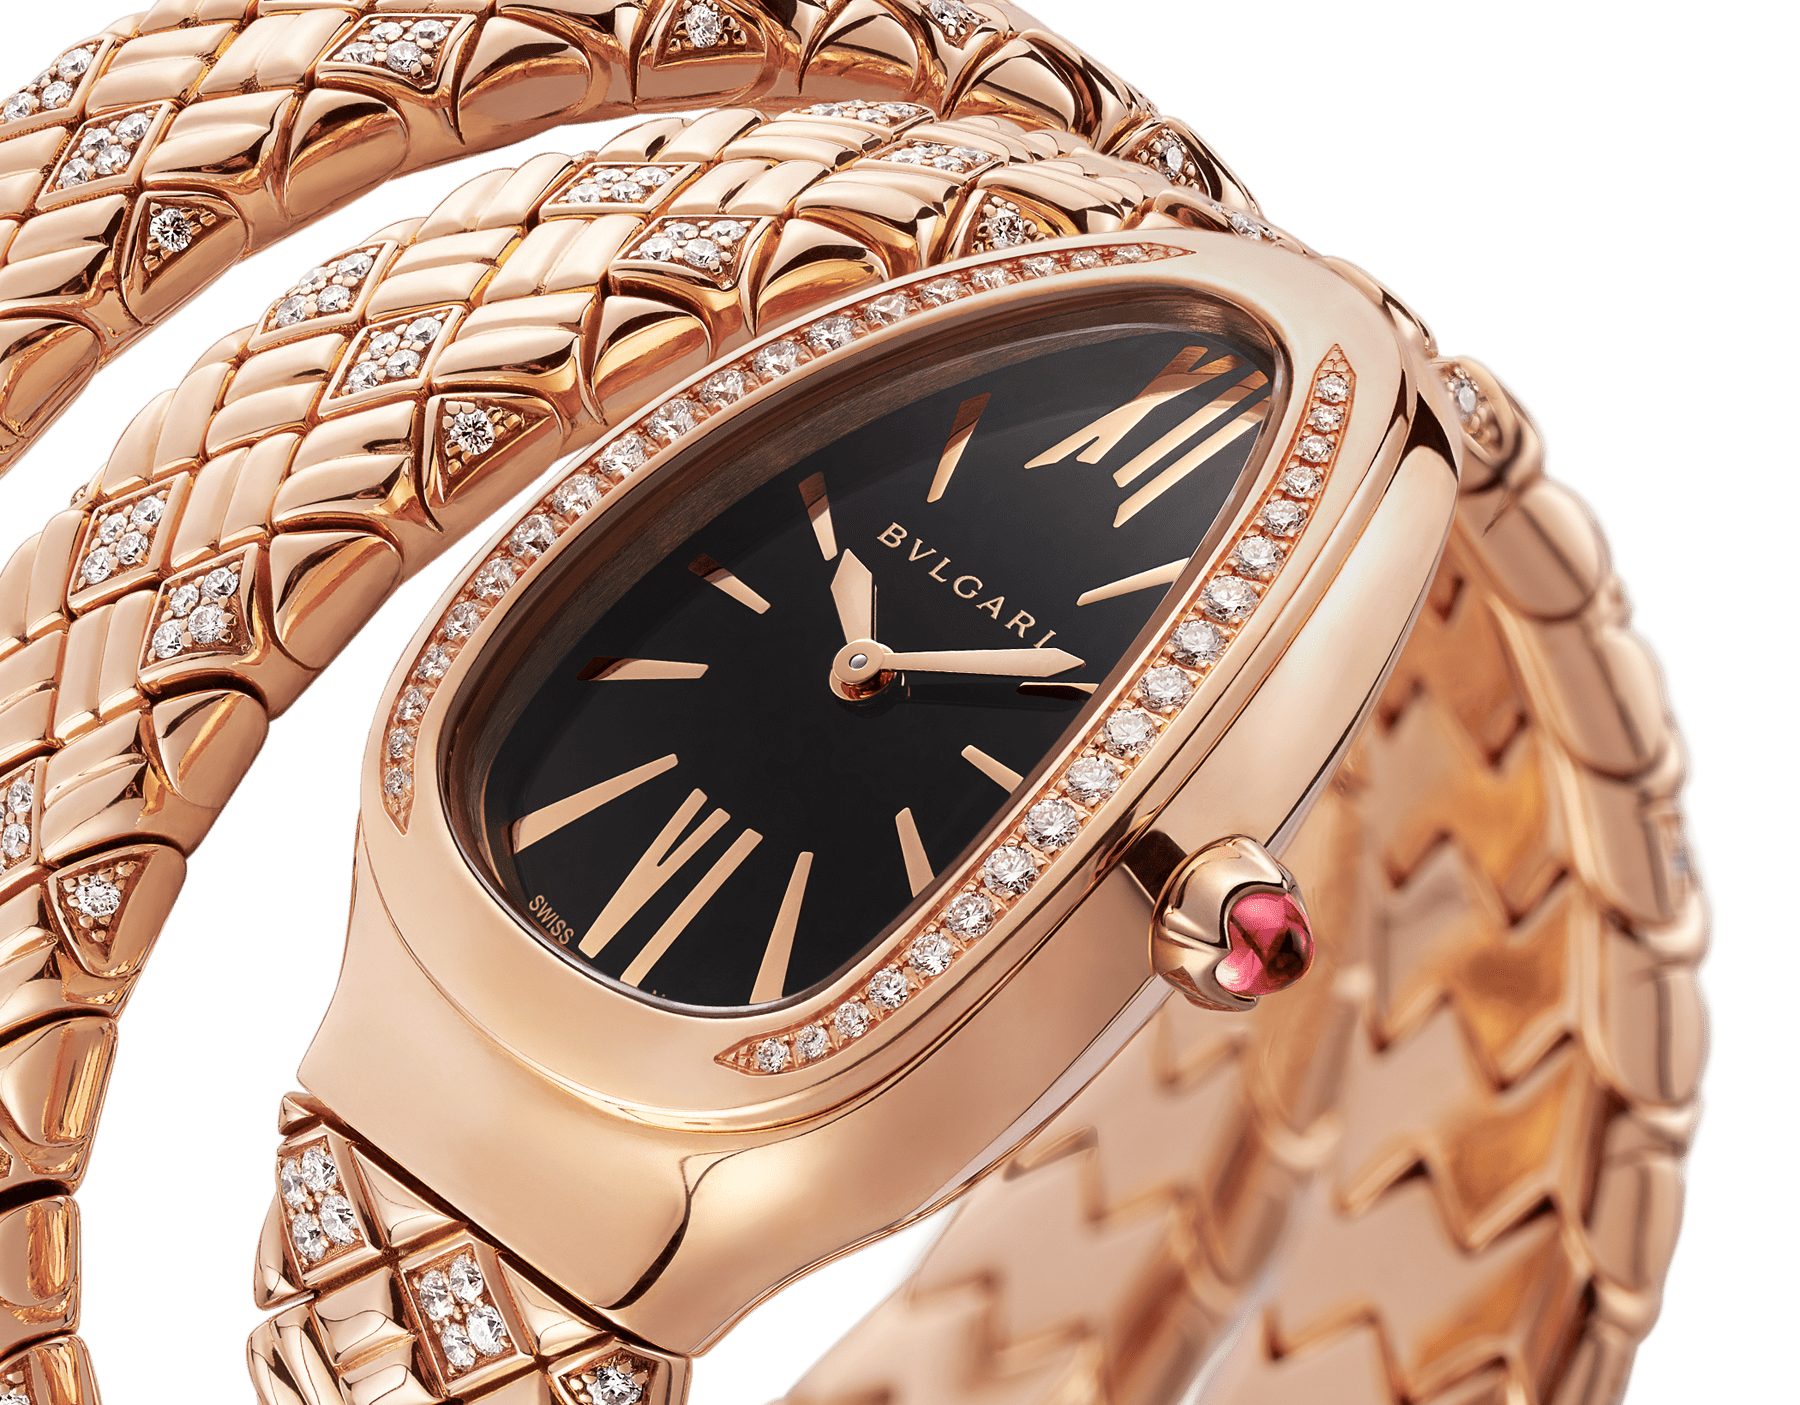 Serpenti Spiga double-spiral watch with 18 kt rose gold case and bracelet set with diamonds, and black dial 103252 image 3